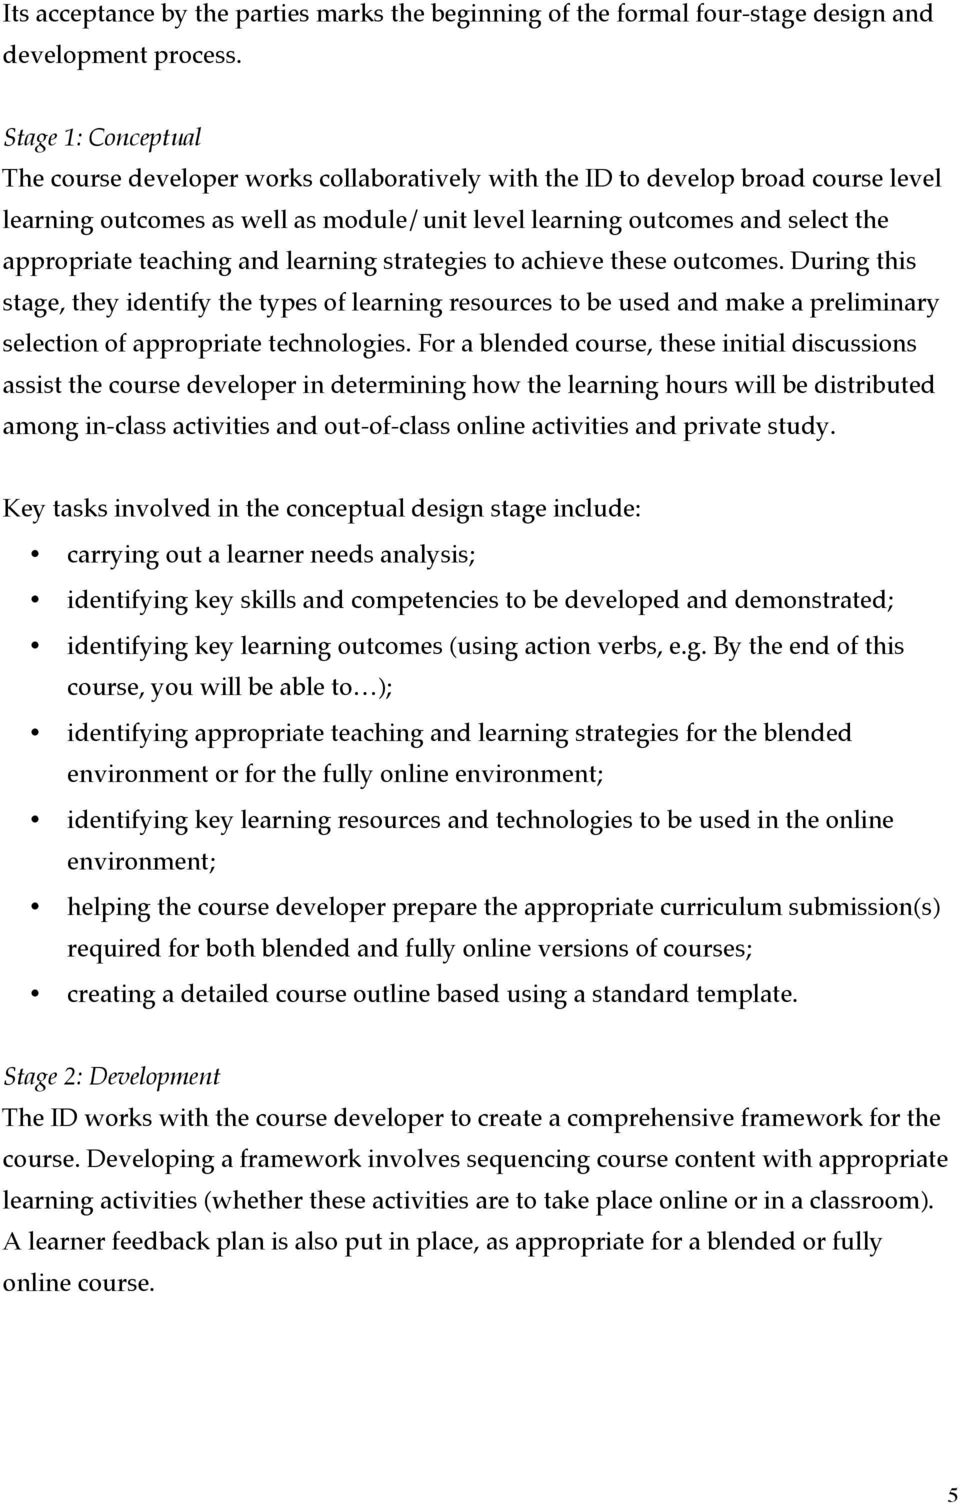 teaching and learning strategies to achieve these outcomes. During this stage, they identify the types of learning resources to be used and make a preliminary selection of appropriate technologies.